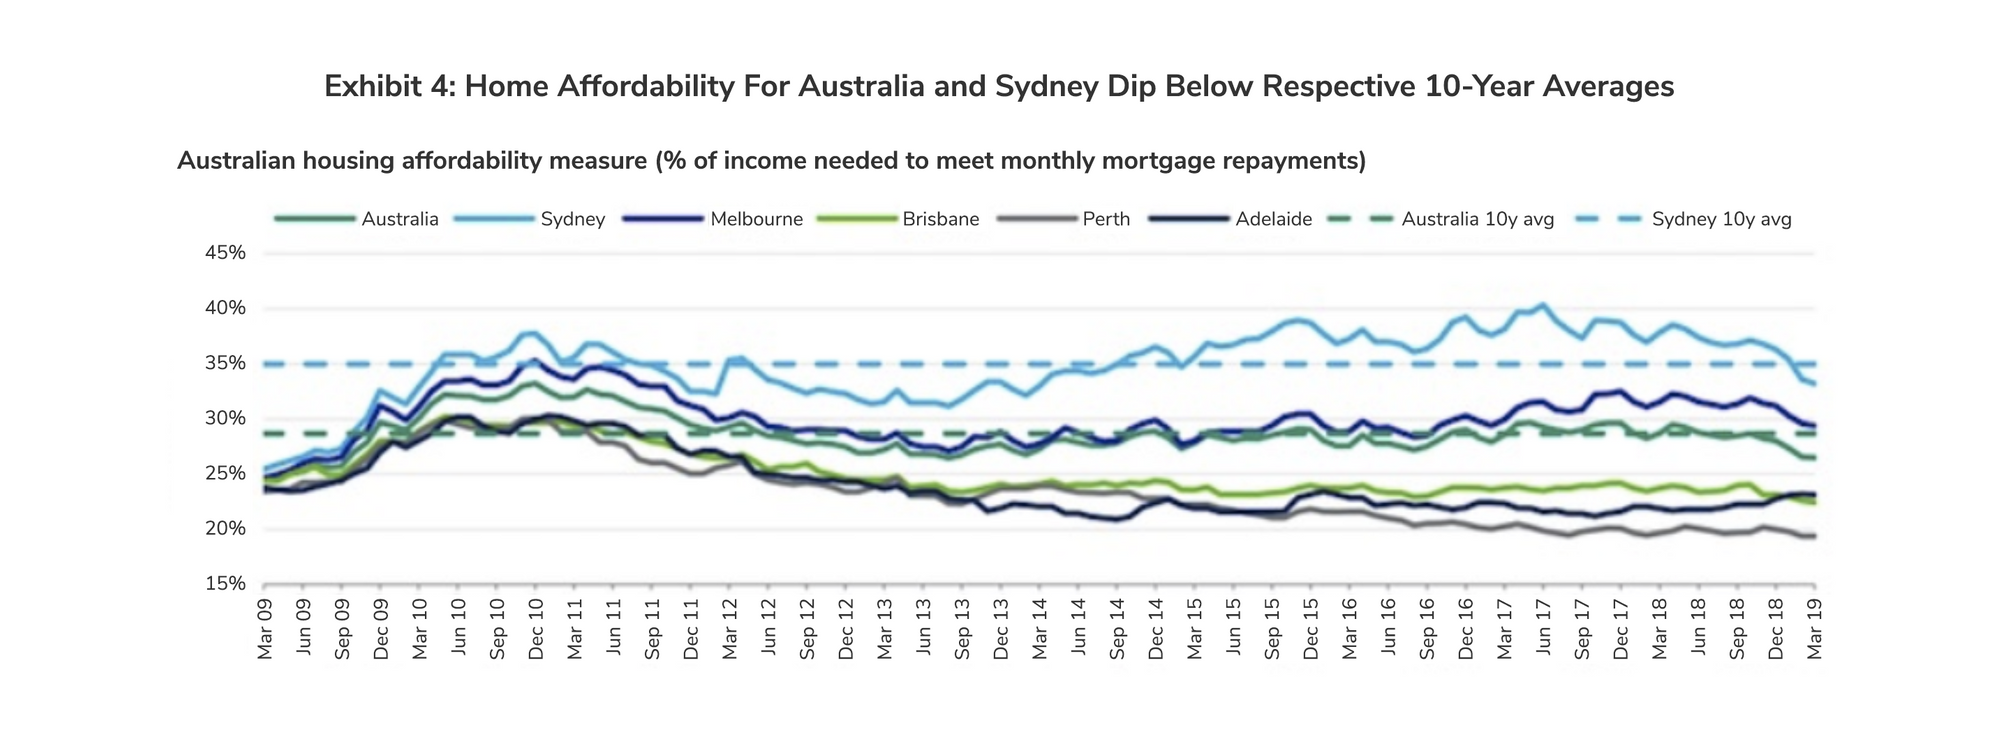 Home Affordability for Australia and Sydney Dip Below Respective 10-Year Averages